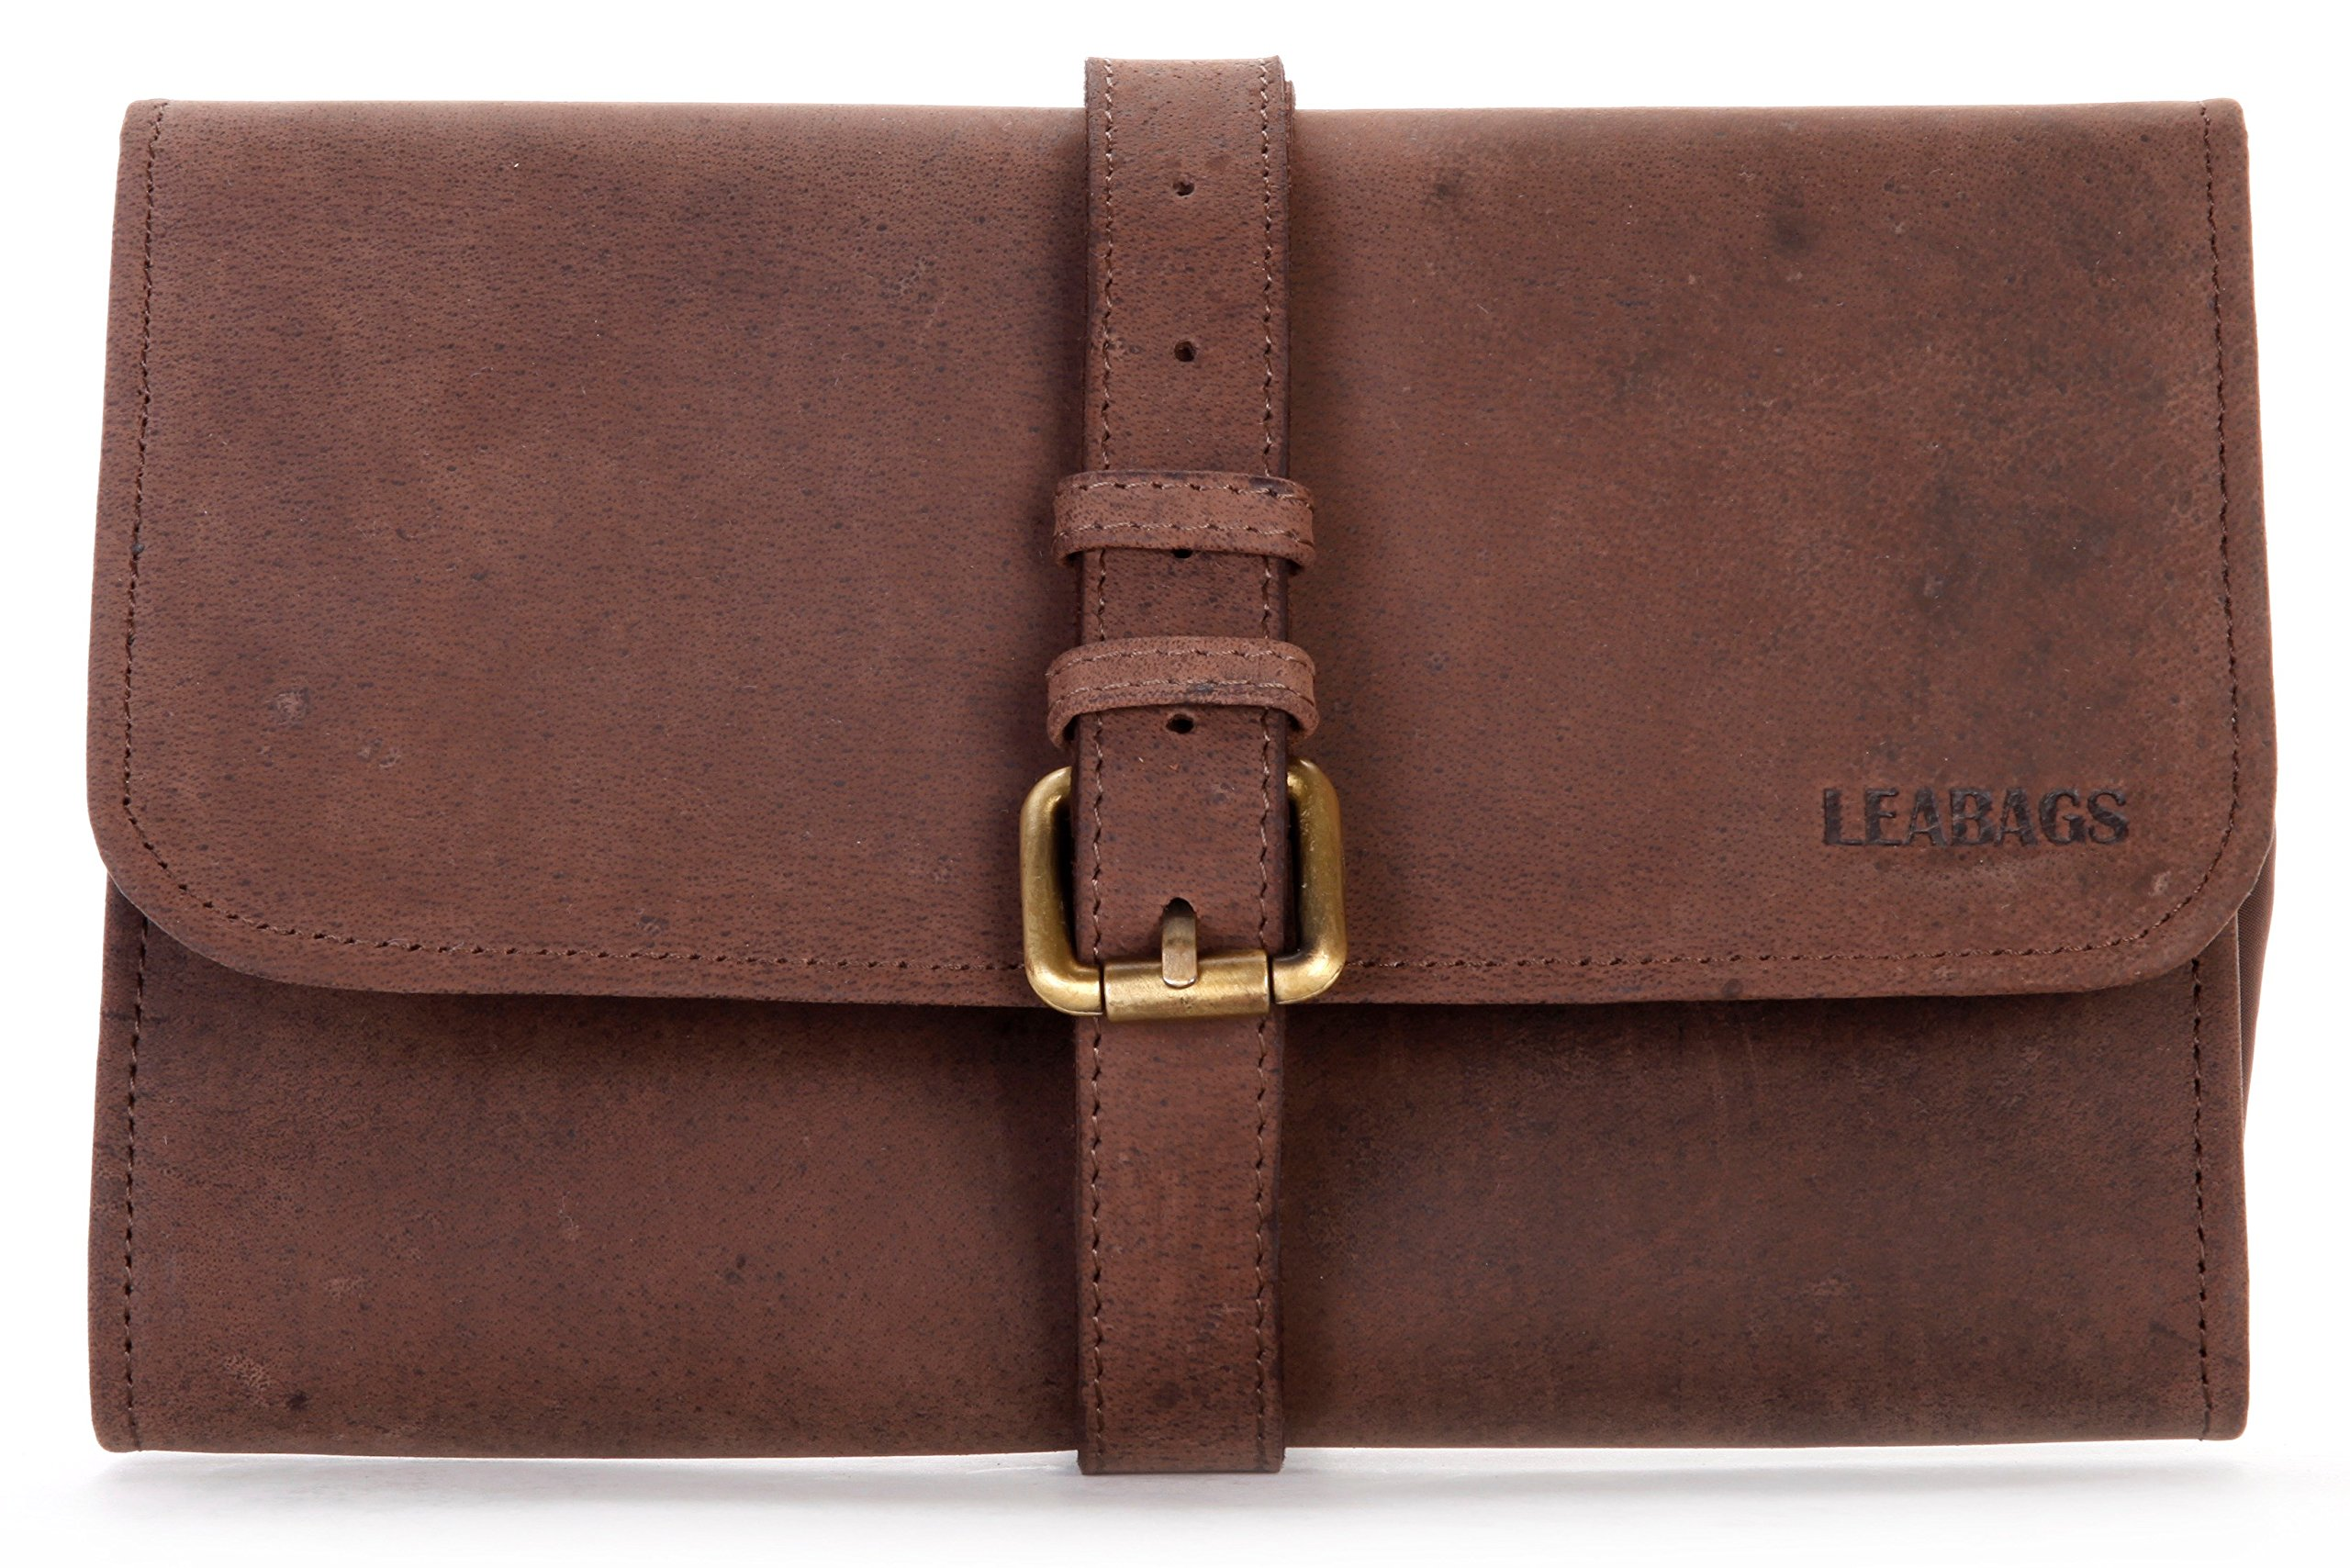 LEABAGS Palm Canyon genuine buffalo leather toiletry bag in vintage style - Nutmeg